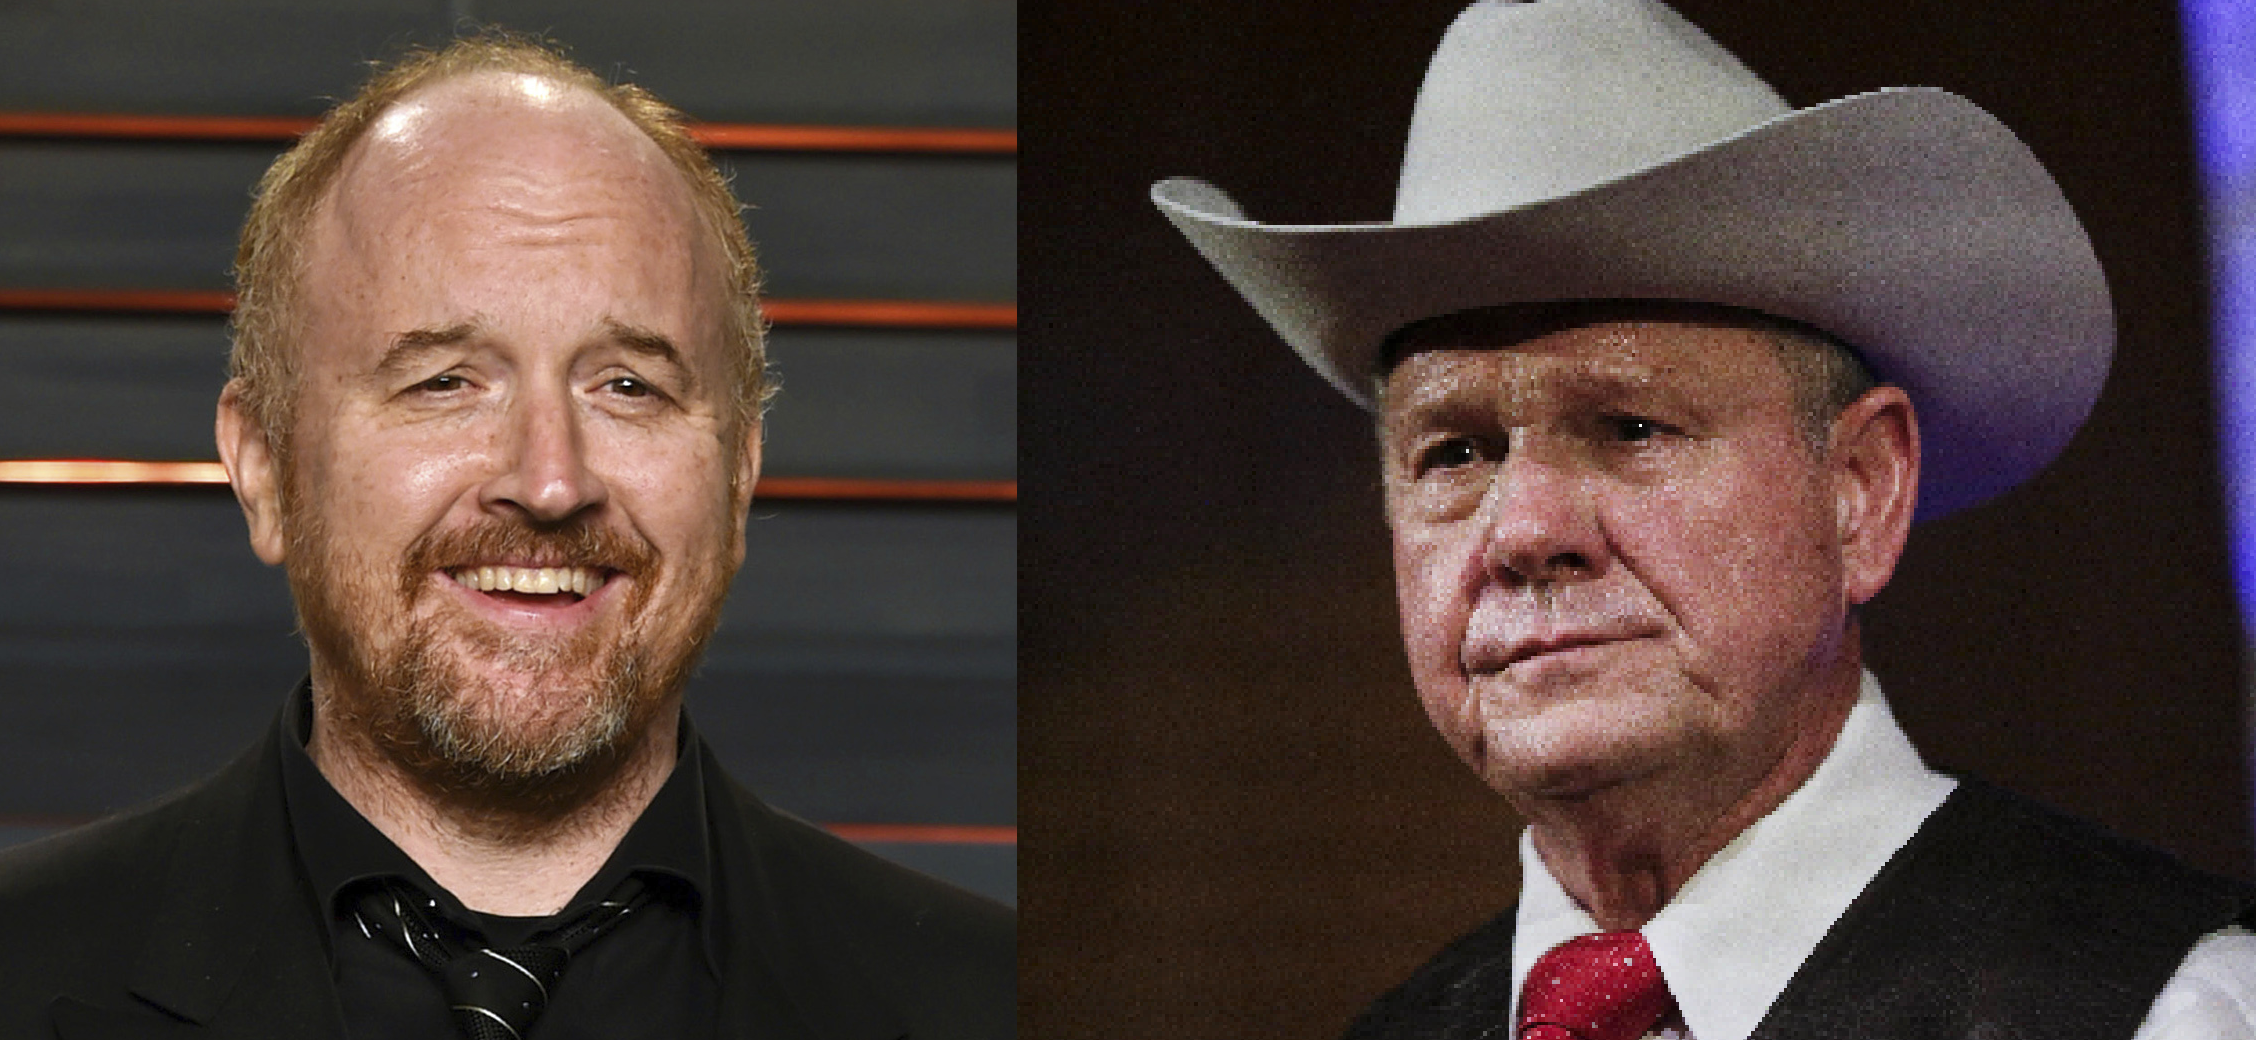 Comedian Louis C.K. (left) and Alabama Senate candidate Roy Moore (right) faced accusations of sexual misconduct Thursday. (Invision/AP/Brynn Anderson)